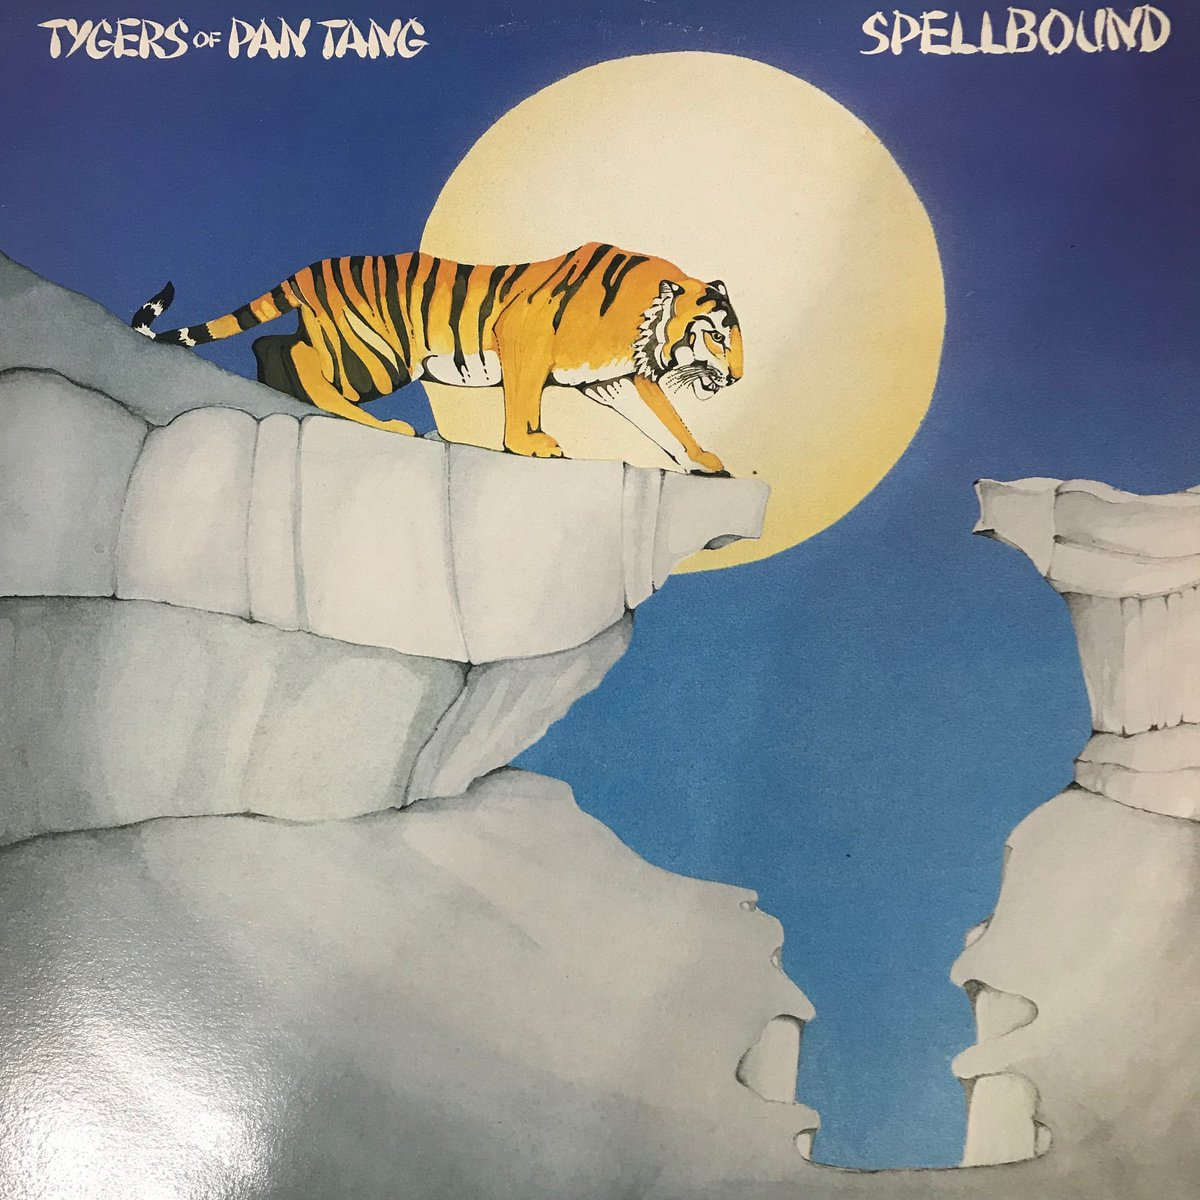 The 2 albums Sykes did with Tygers of Pan Tang were blistering slabs of guitargasm! pic.twitter.com/vL3xtPR5Hc